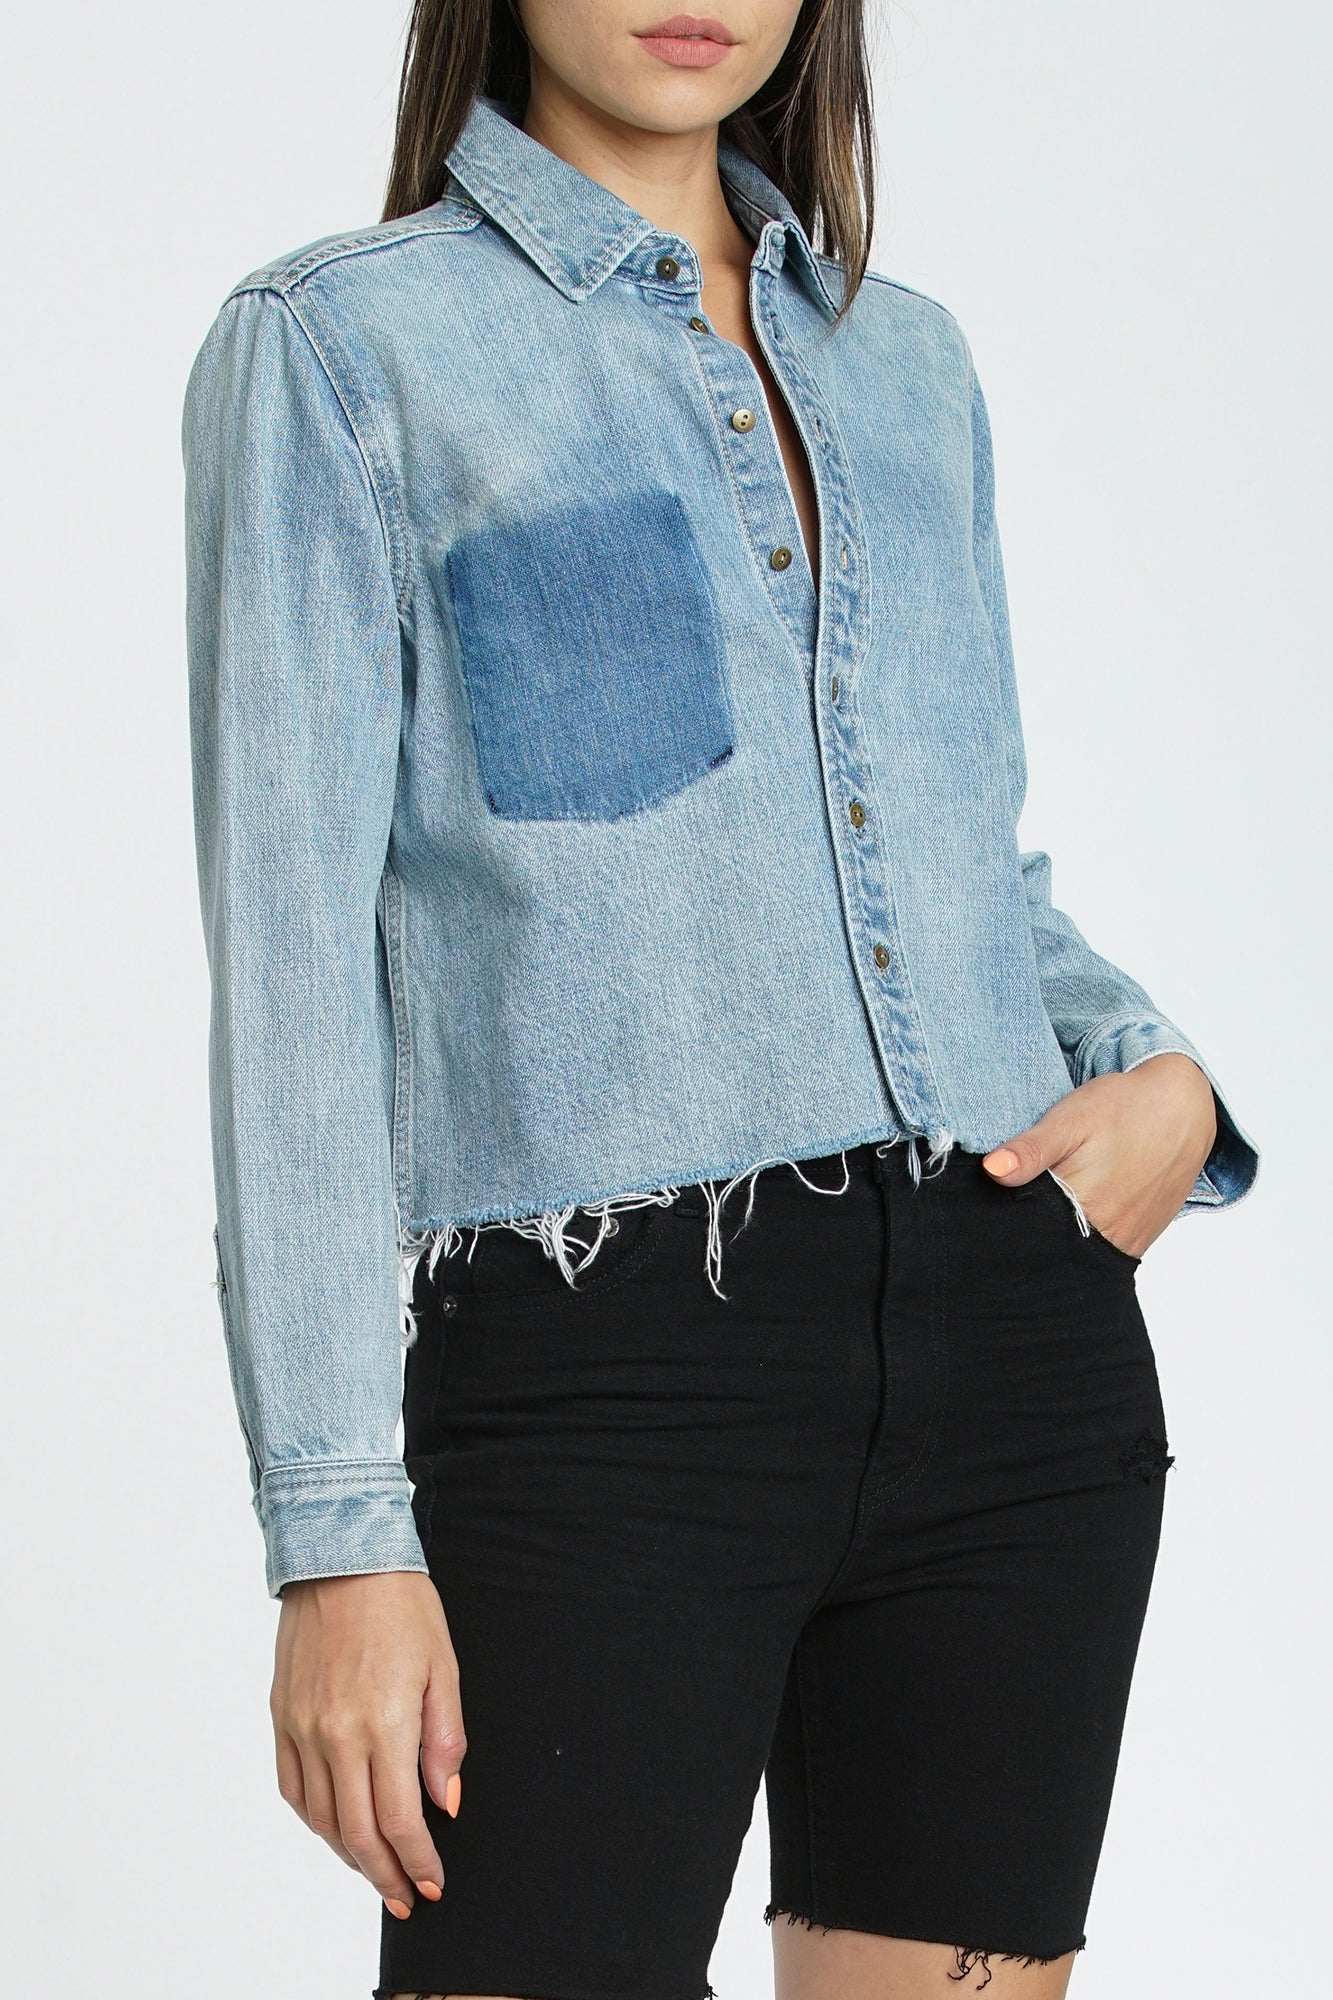 Hensley Cropped Denim Shirt - Come On